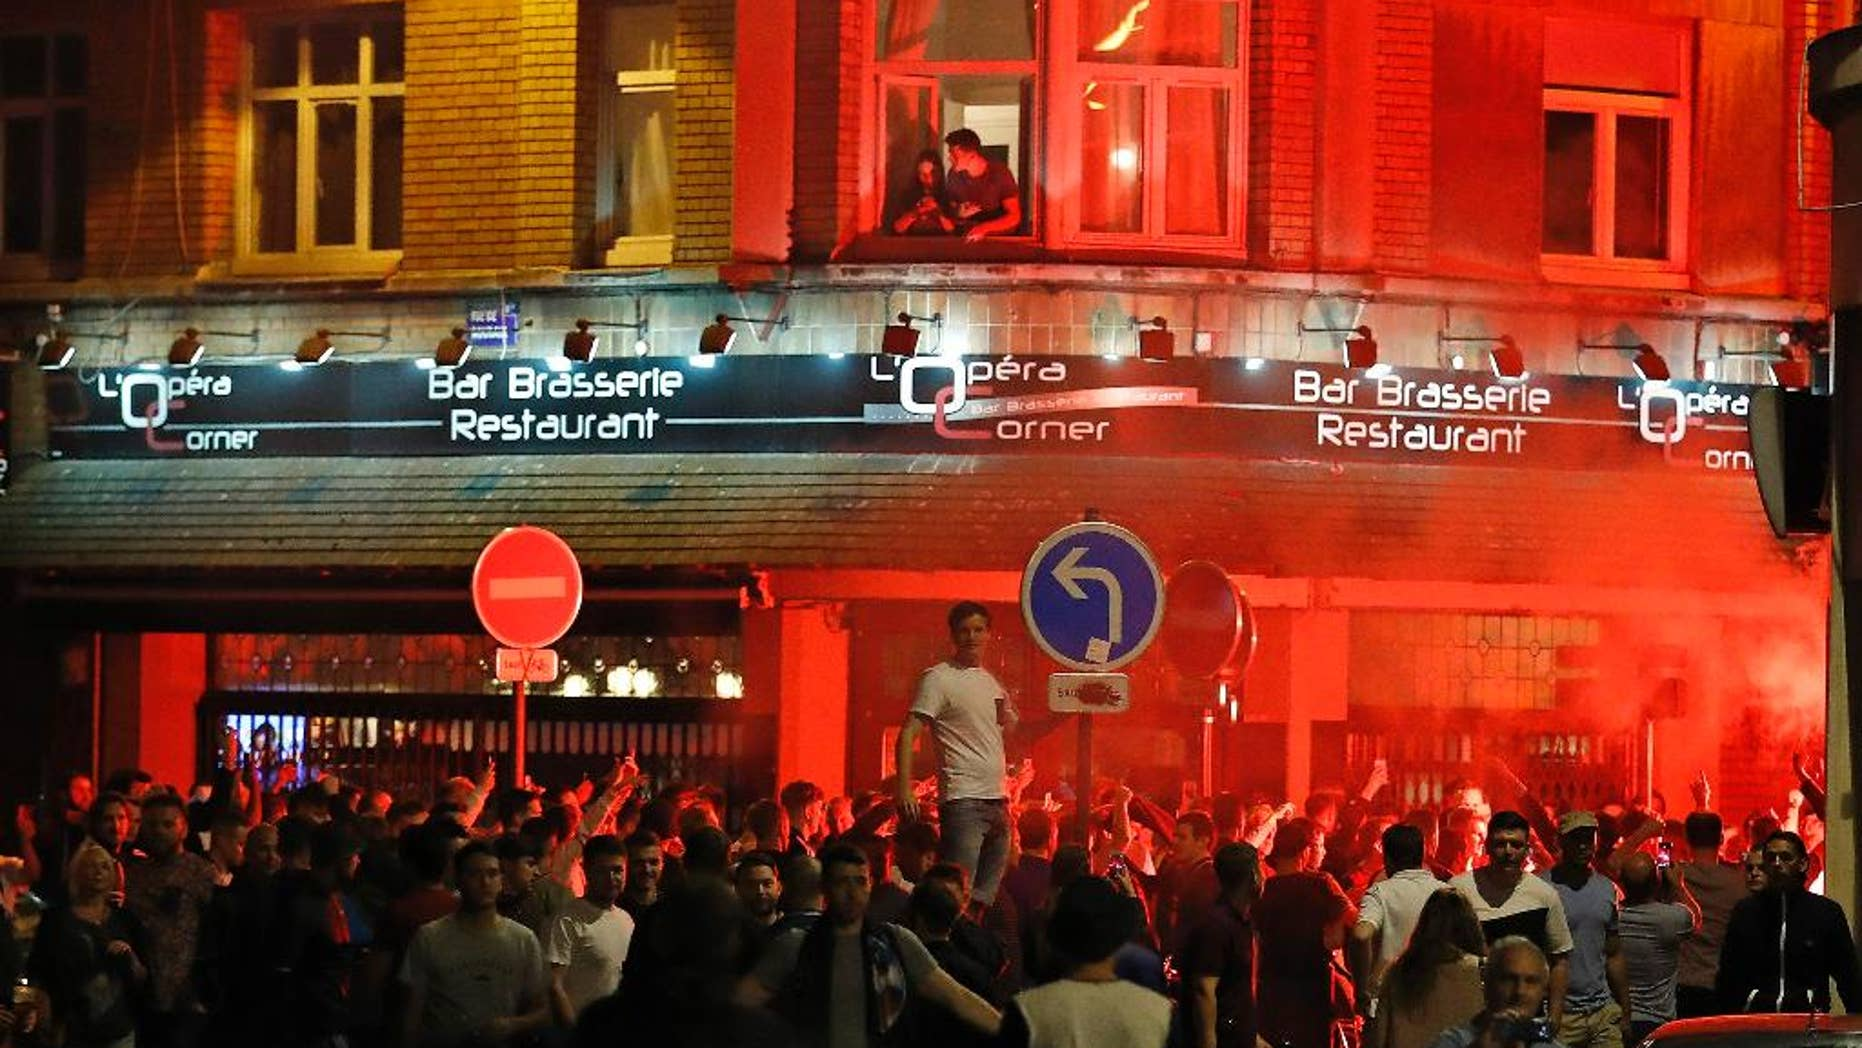 England supporters gather outside a bar in downtown Lille, France Wednesday, June 15, 2016 one day ahead of the Euro 2016 Group B soccer match against Wales in nearby Lens.